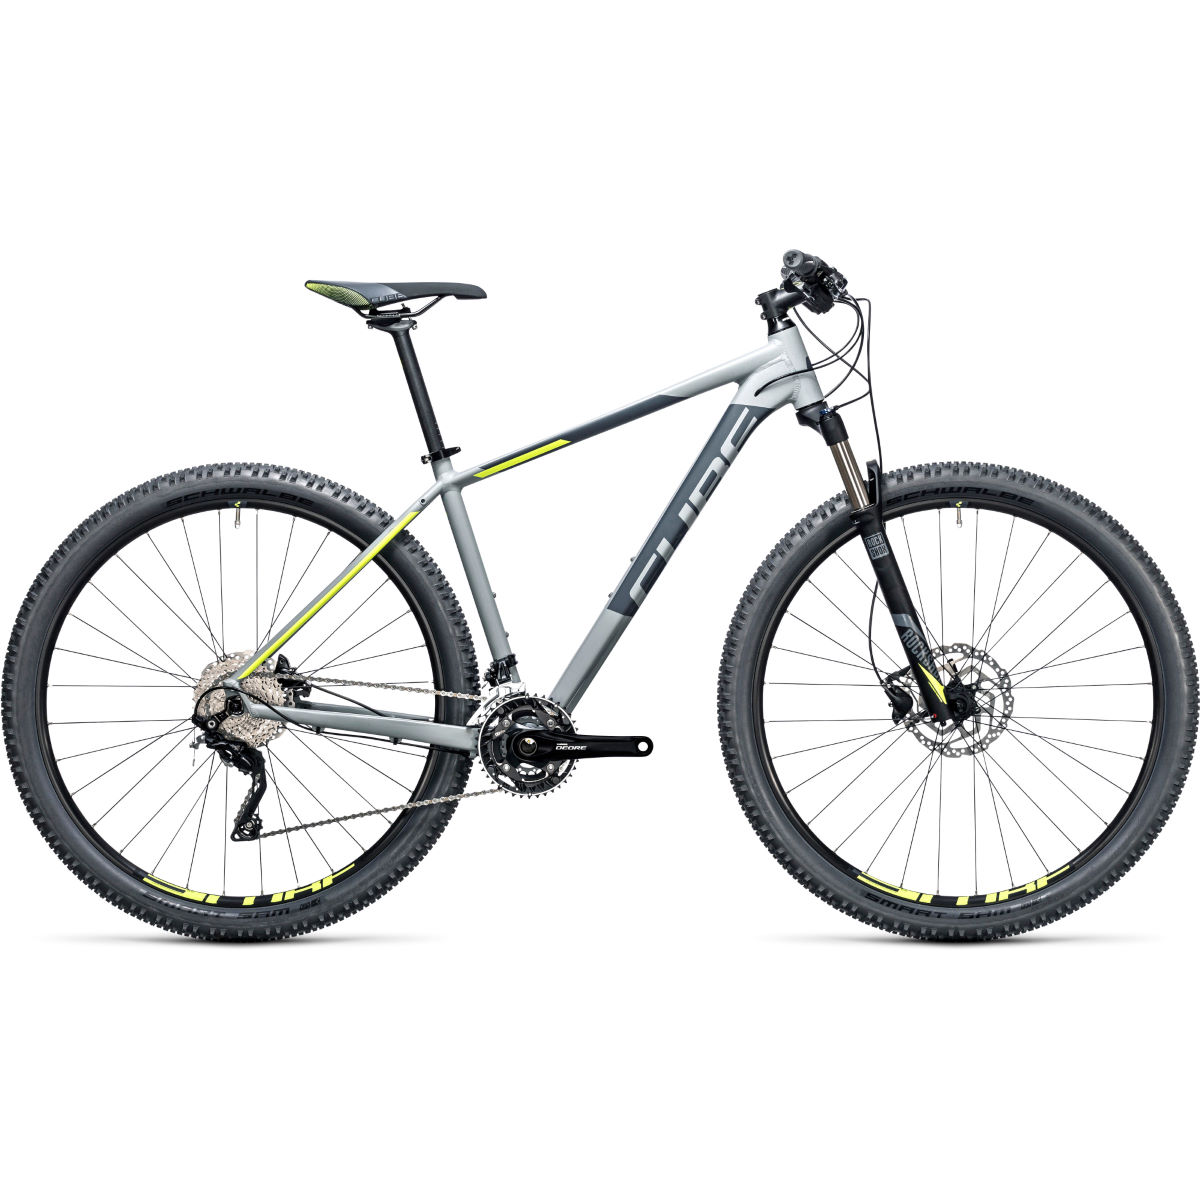 VTT semi-rigide Cube Attention SL 27,5 pouces (2017)